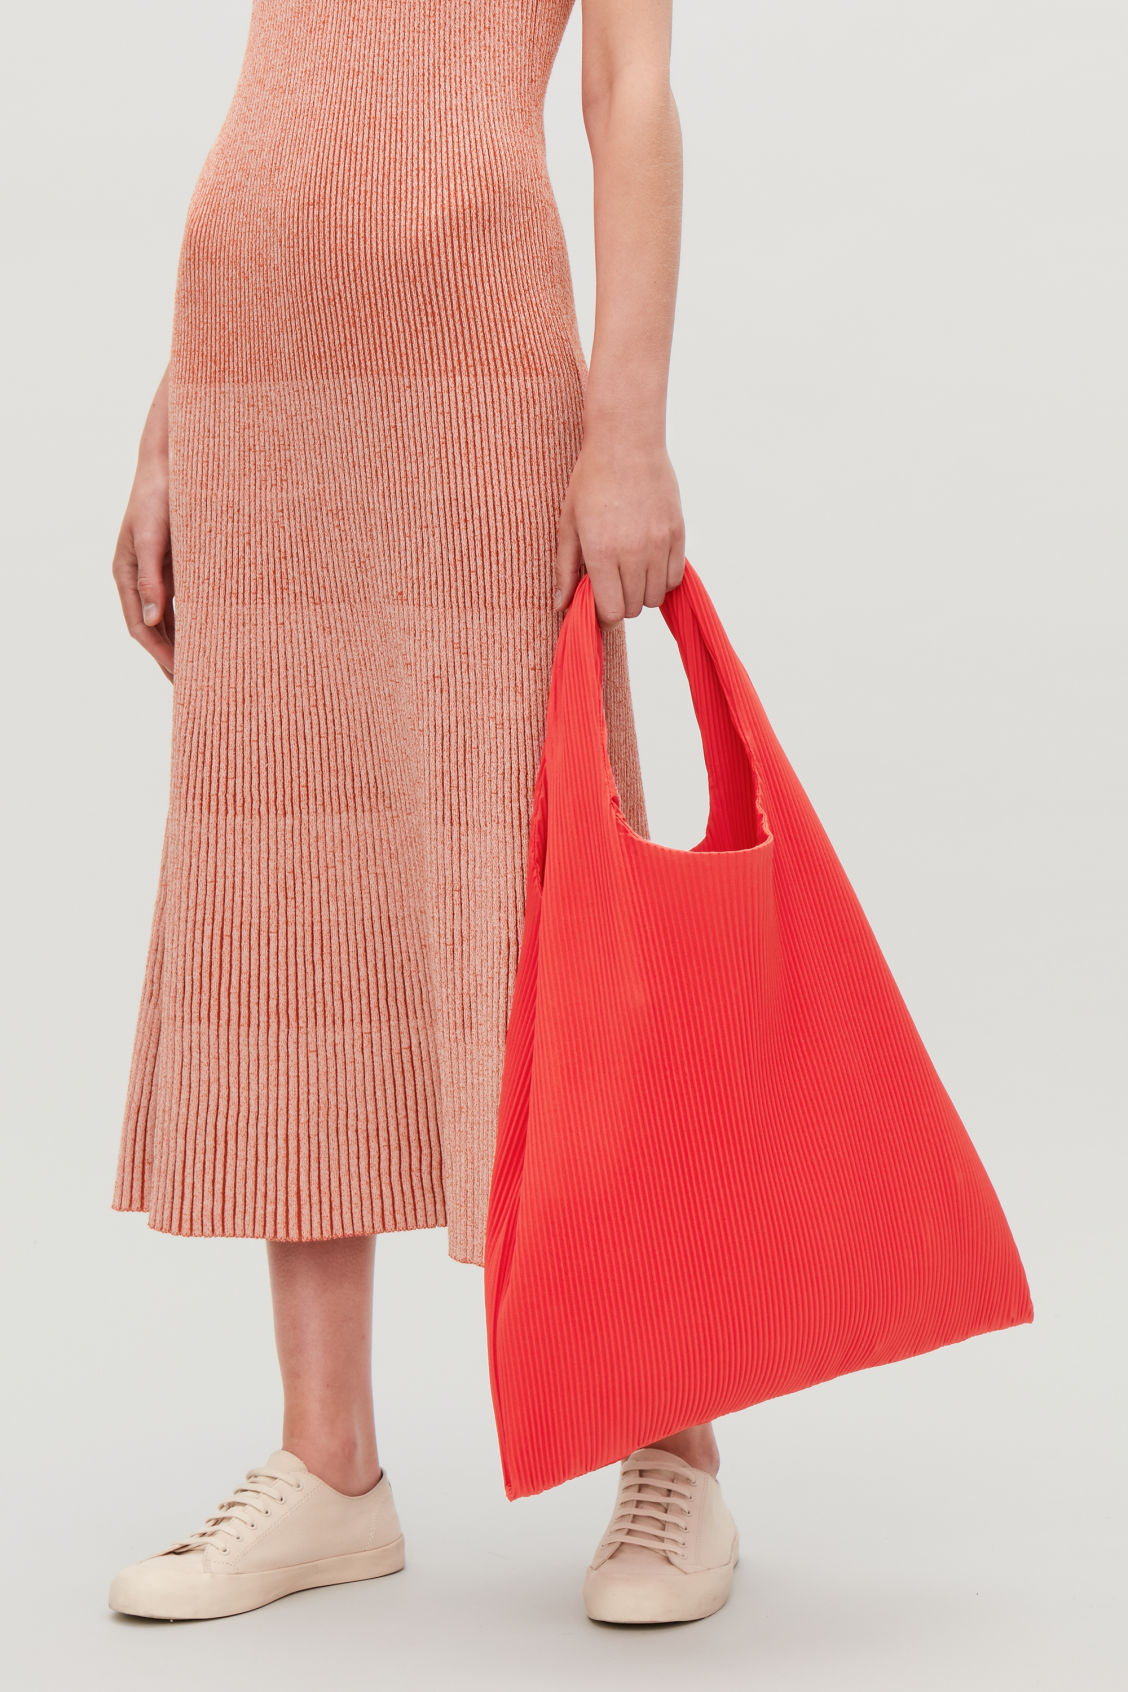 Detailed image of Cos pleated fabric shopper in red